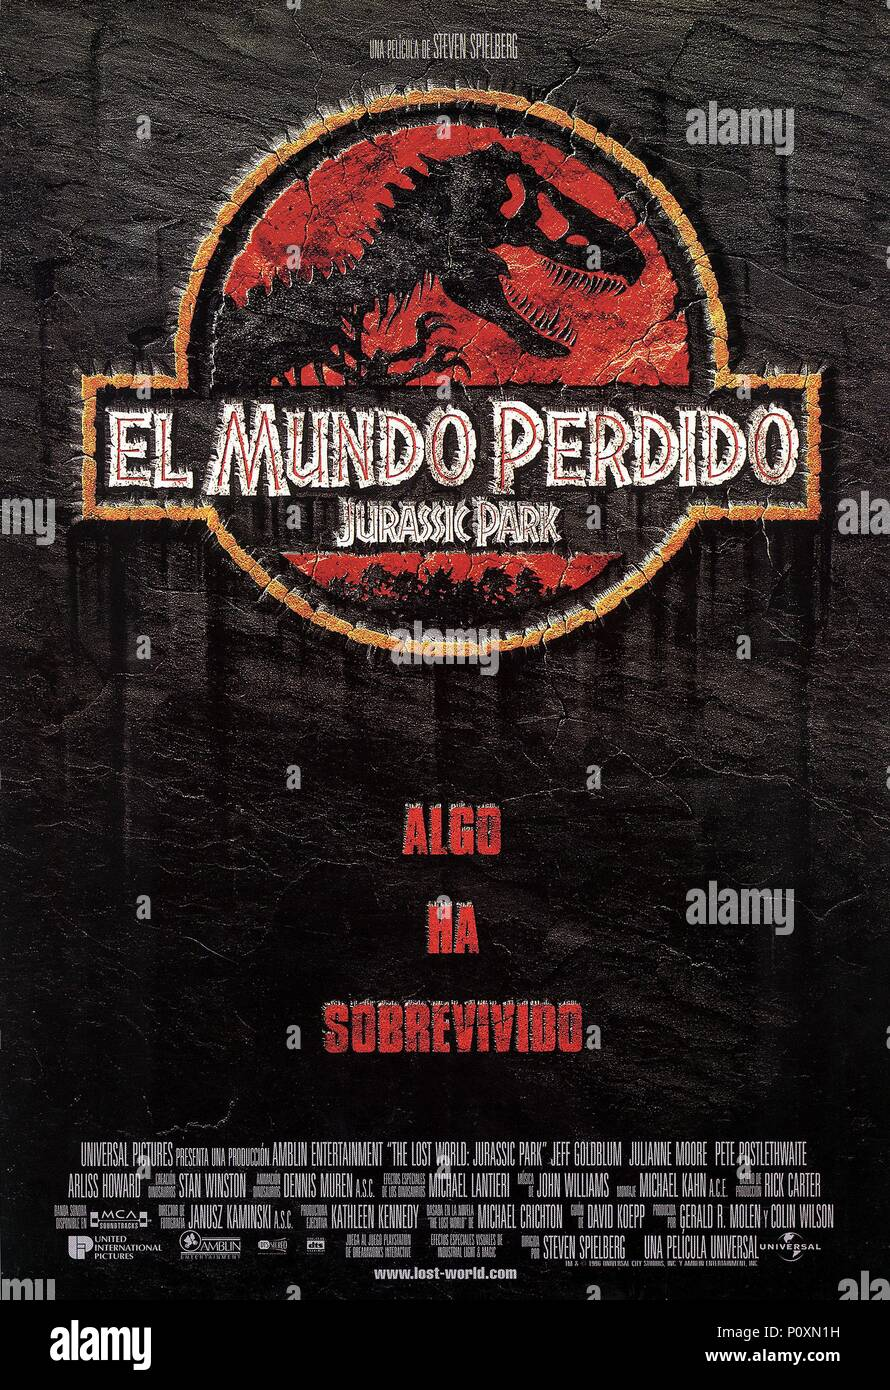 English Title The Lost World Jurassic Park Film Director Steven Spielberg Year 1997 Credit Universal Pictures Album